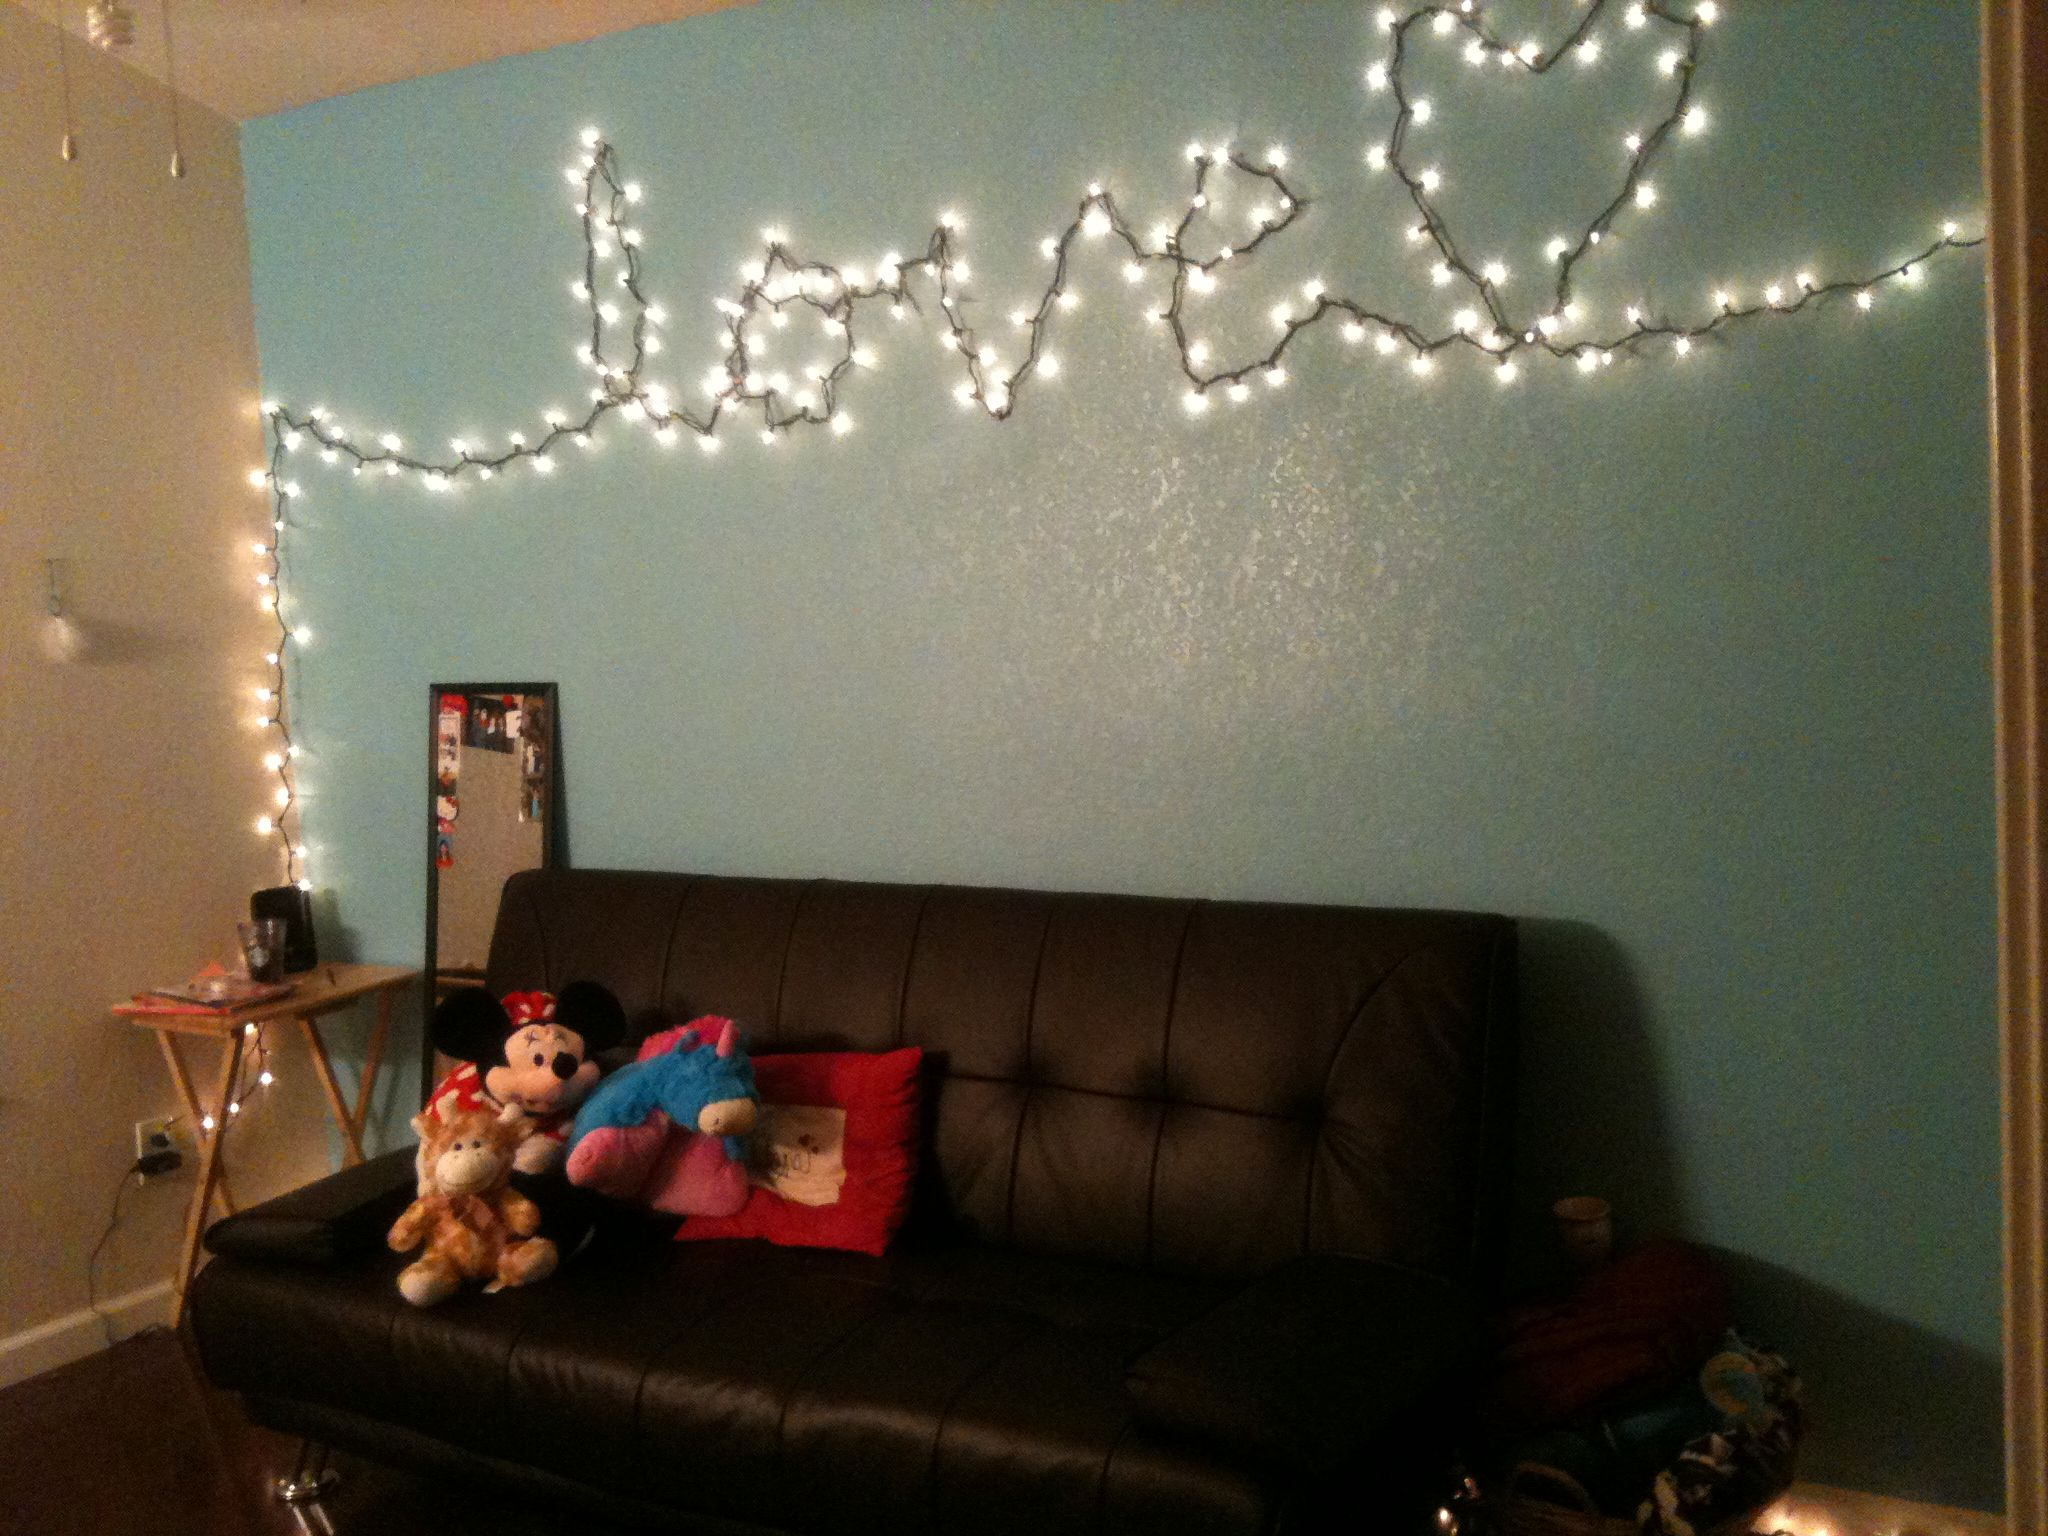 With Blanket Super Cute Christmas Lights In Bedroom Diy Christmas Lights Christmas Lights In Room